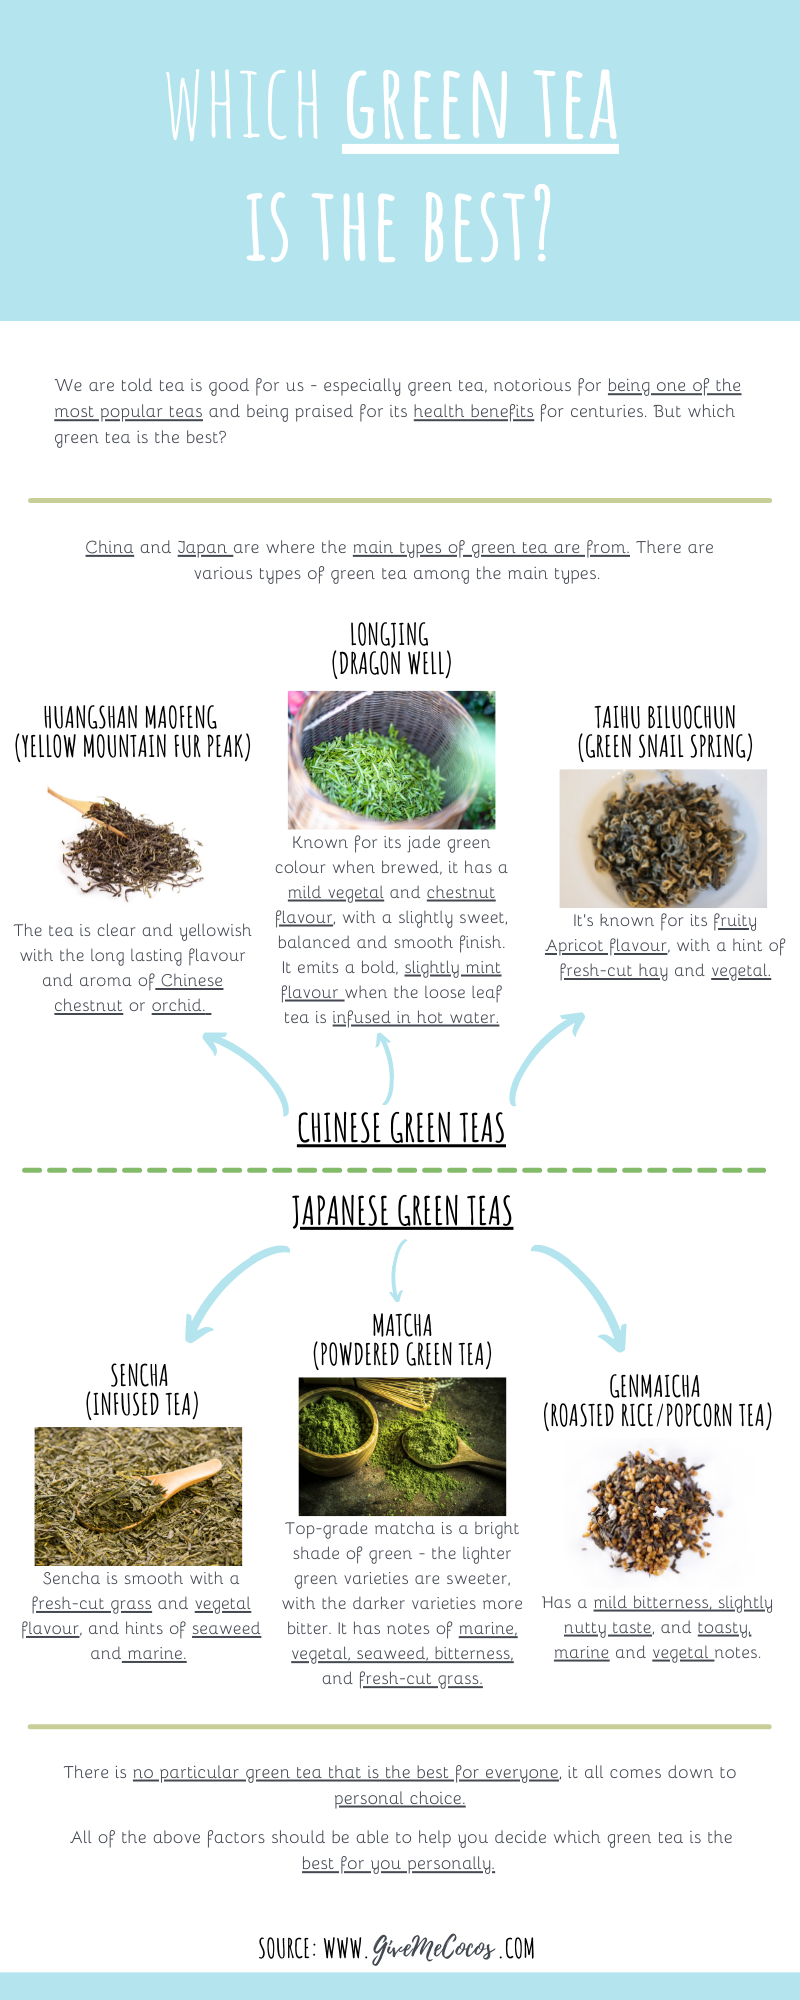 Which Green Tea Is The Best?